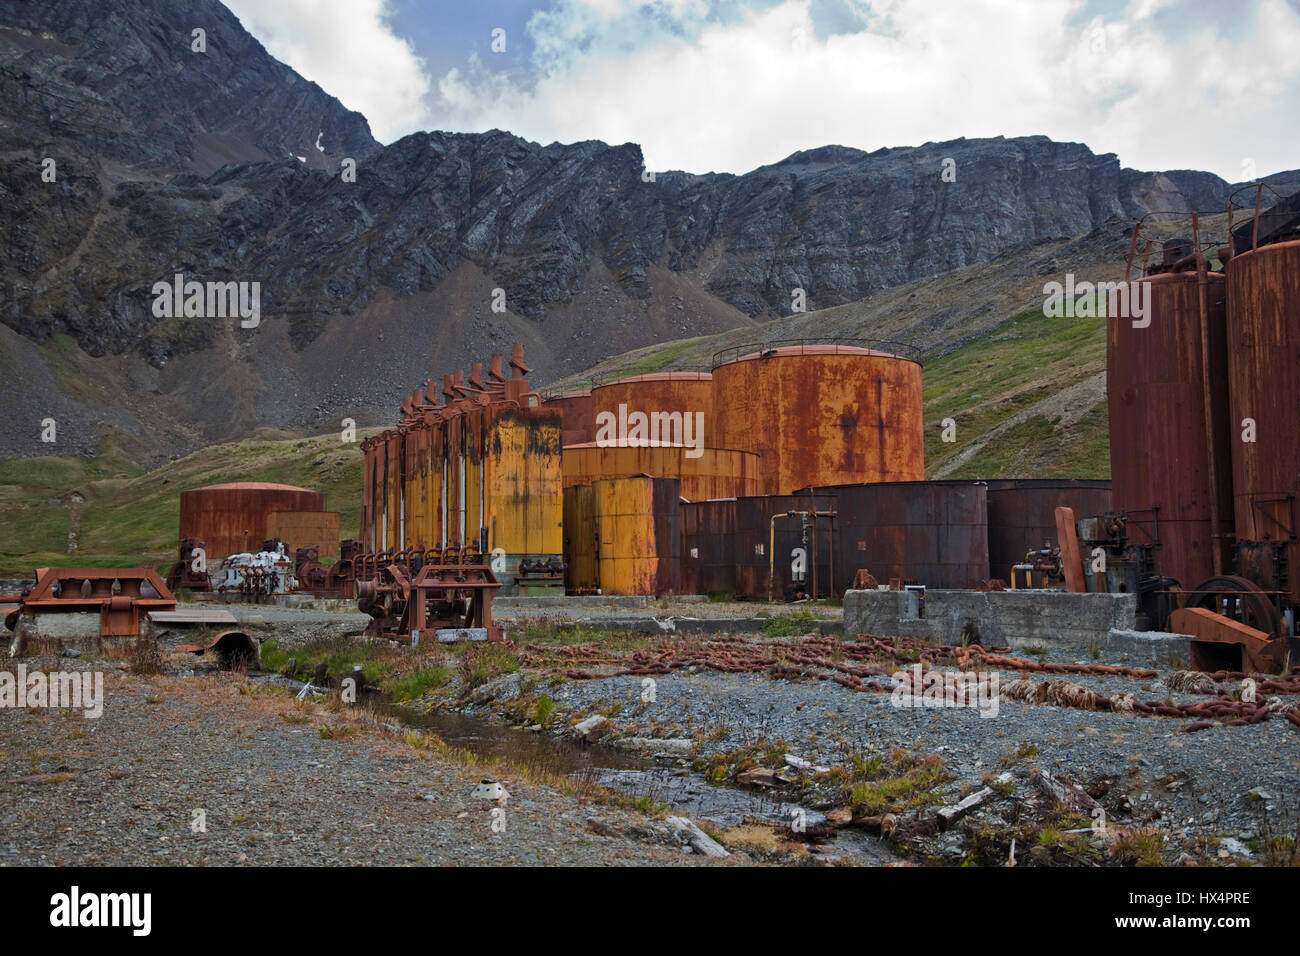 Remains of previous Whaling Station at Grytviken Harbour, South Georgia - Stock Image